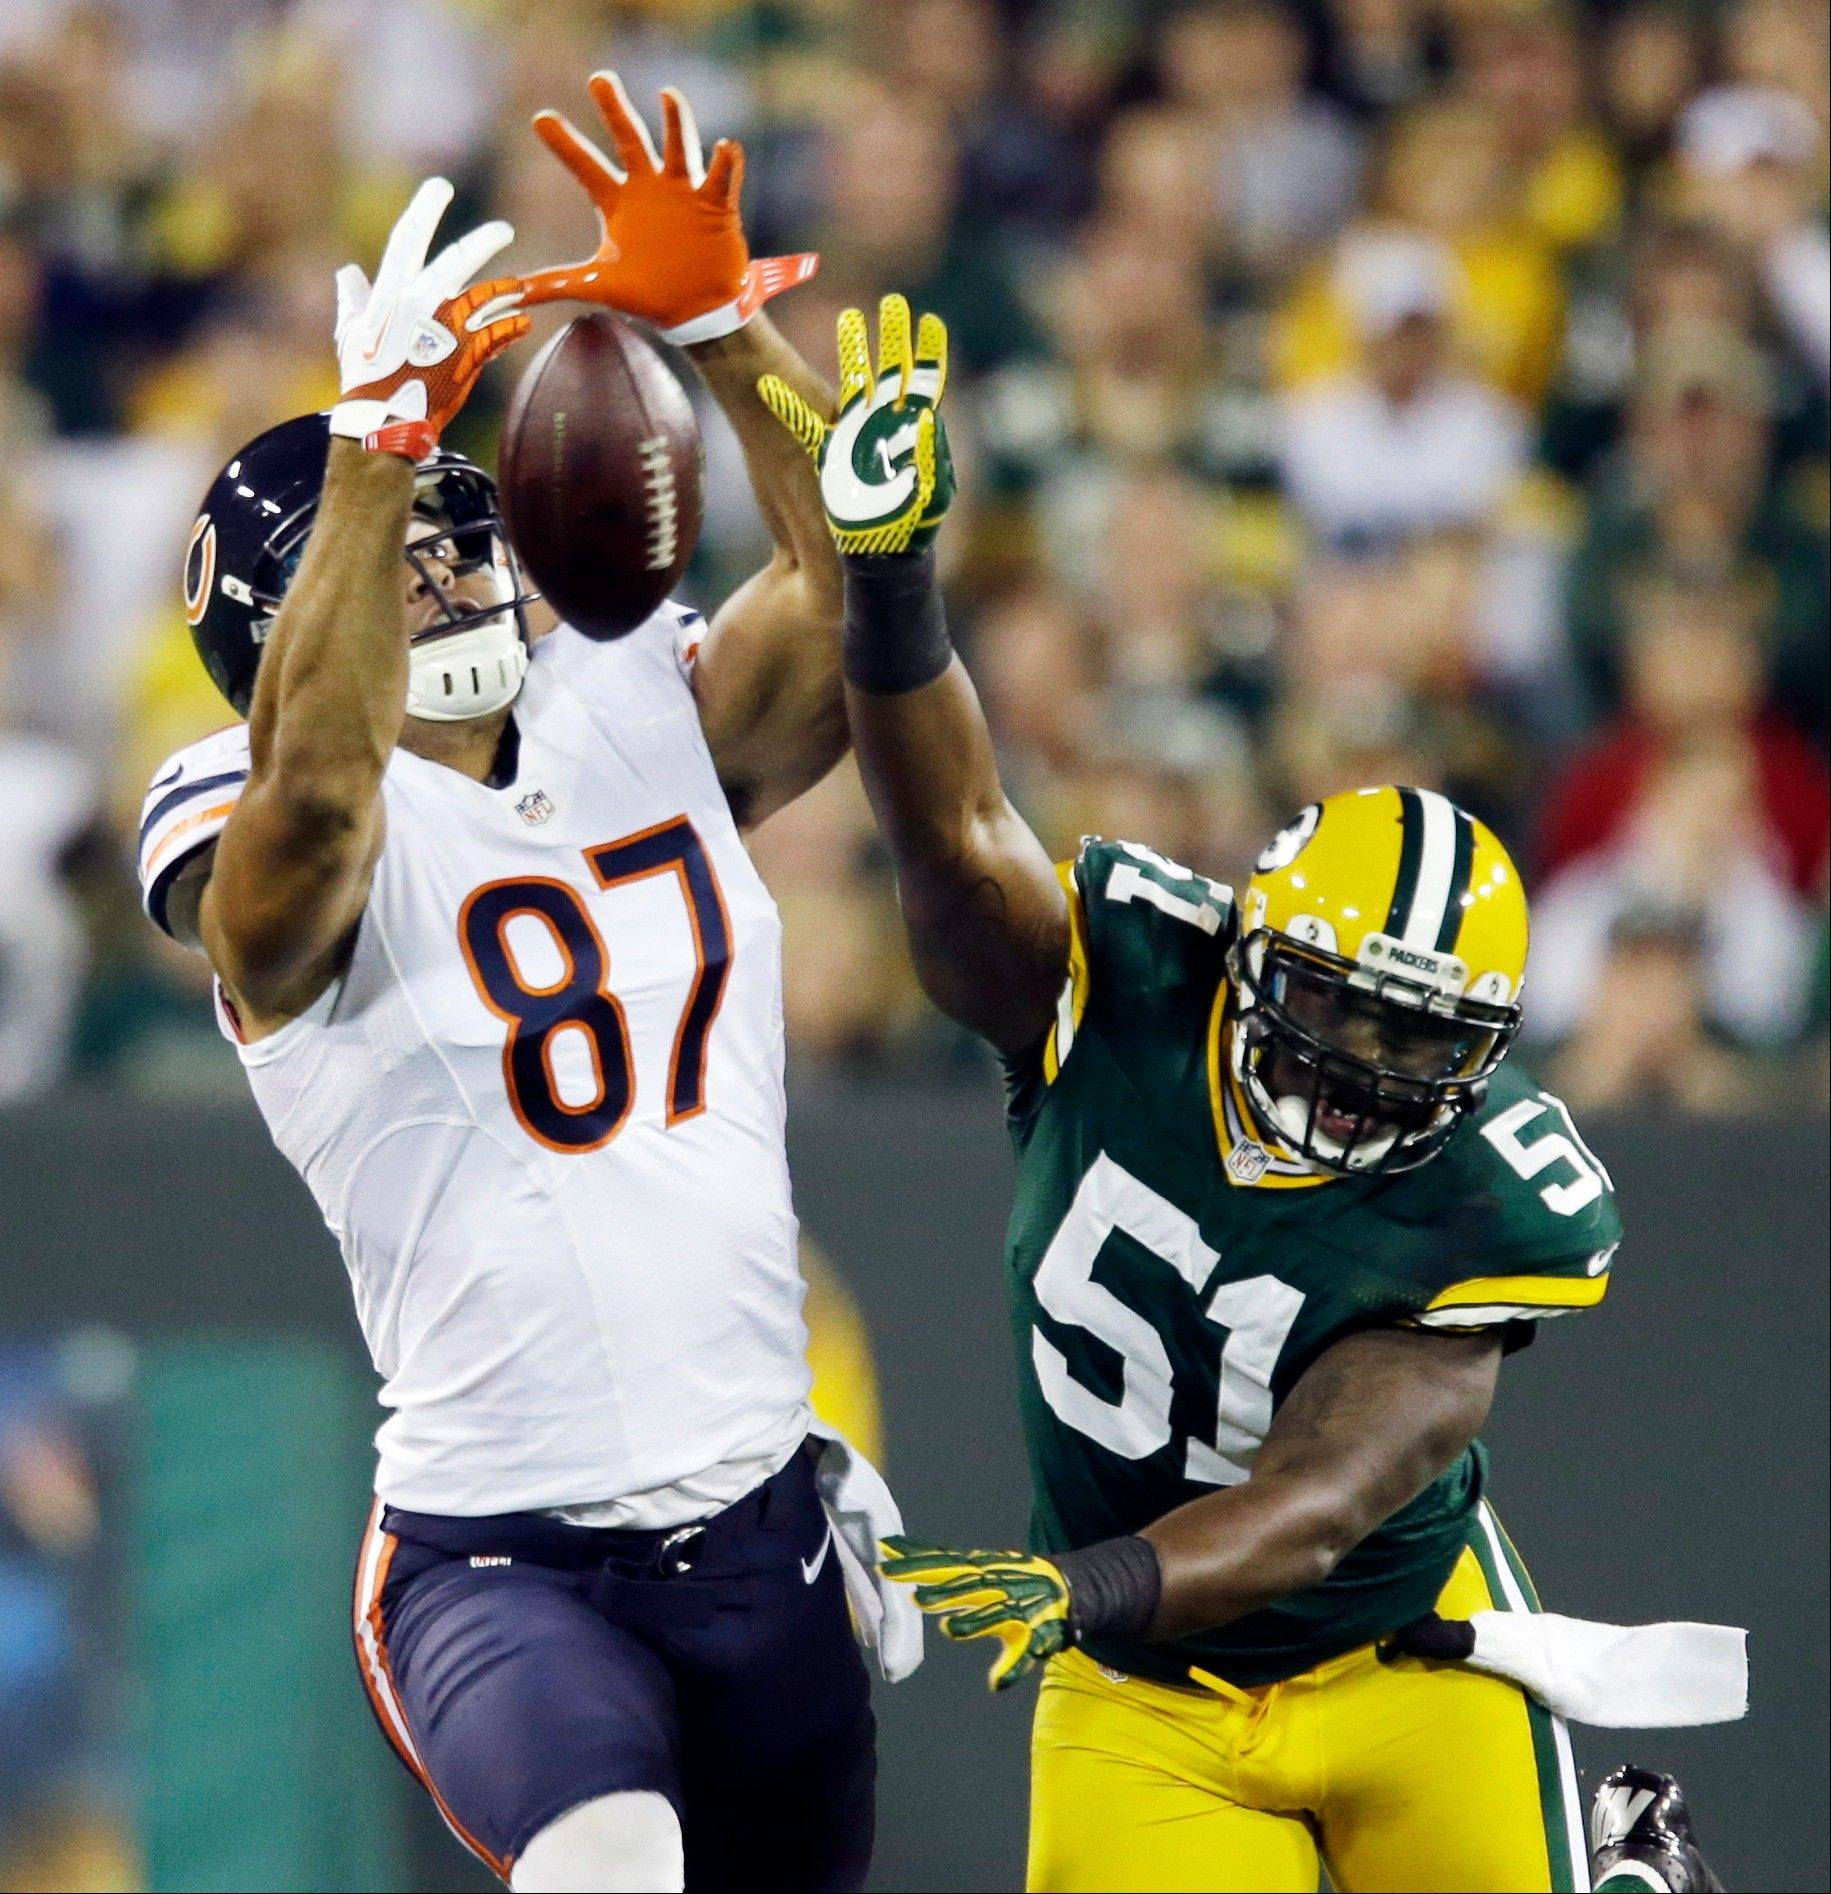 Green Bay Packers' D.J. Smith breaks up a pass intended for Chicago Bears' Kellen Davis during the first half.